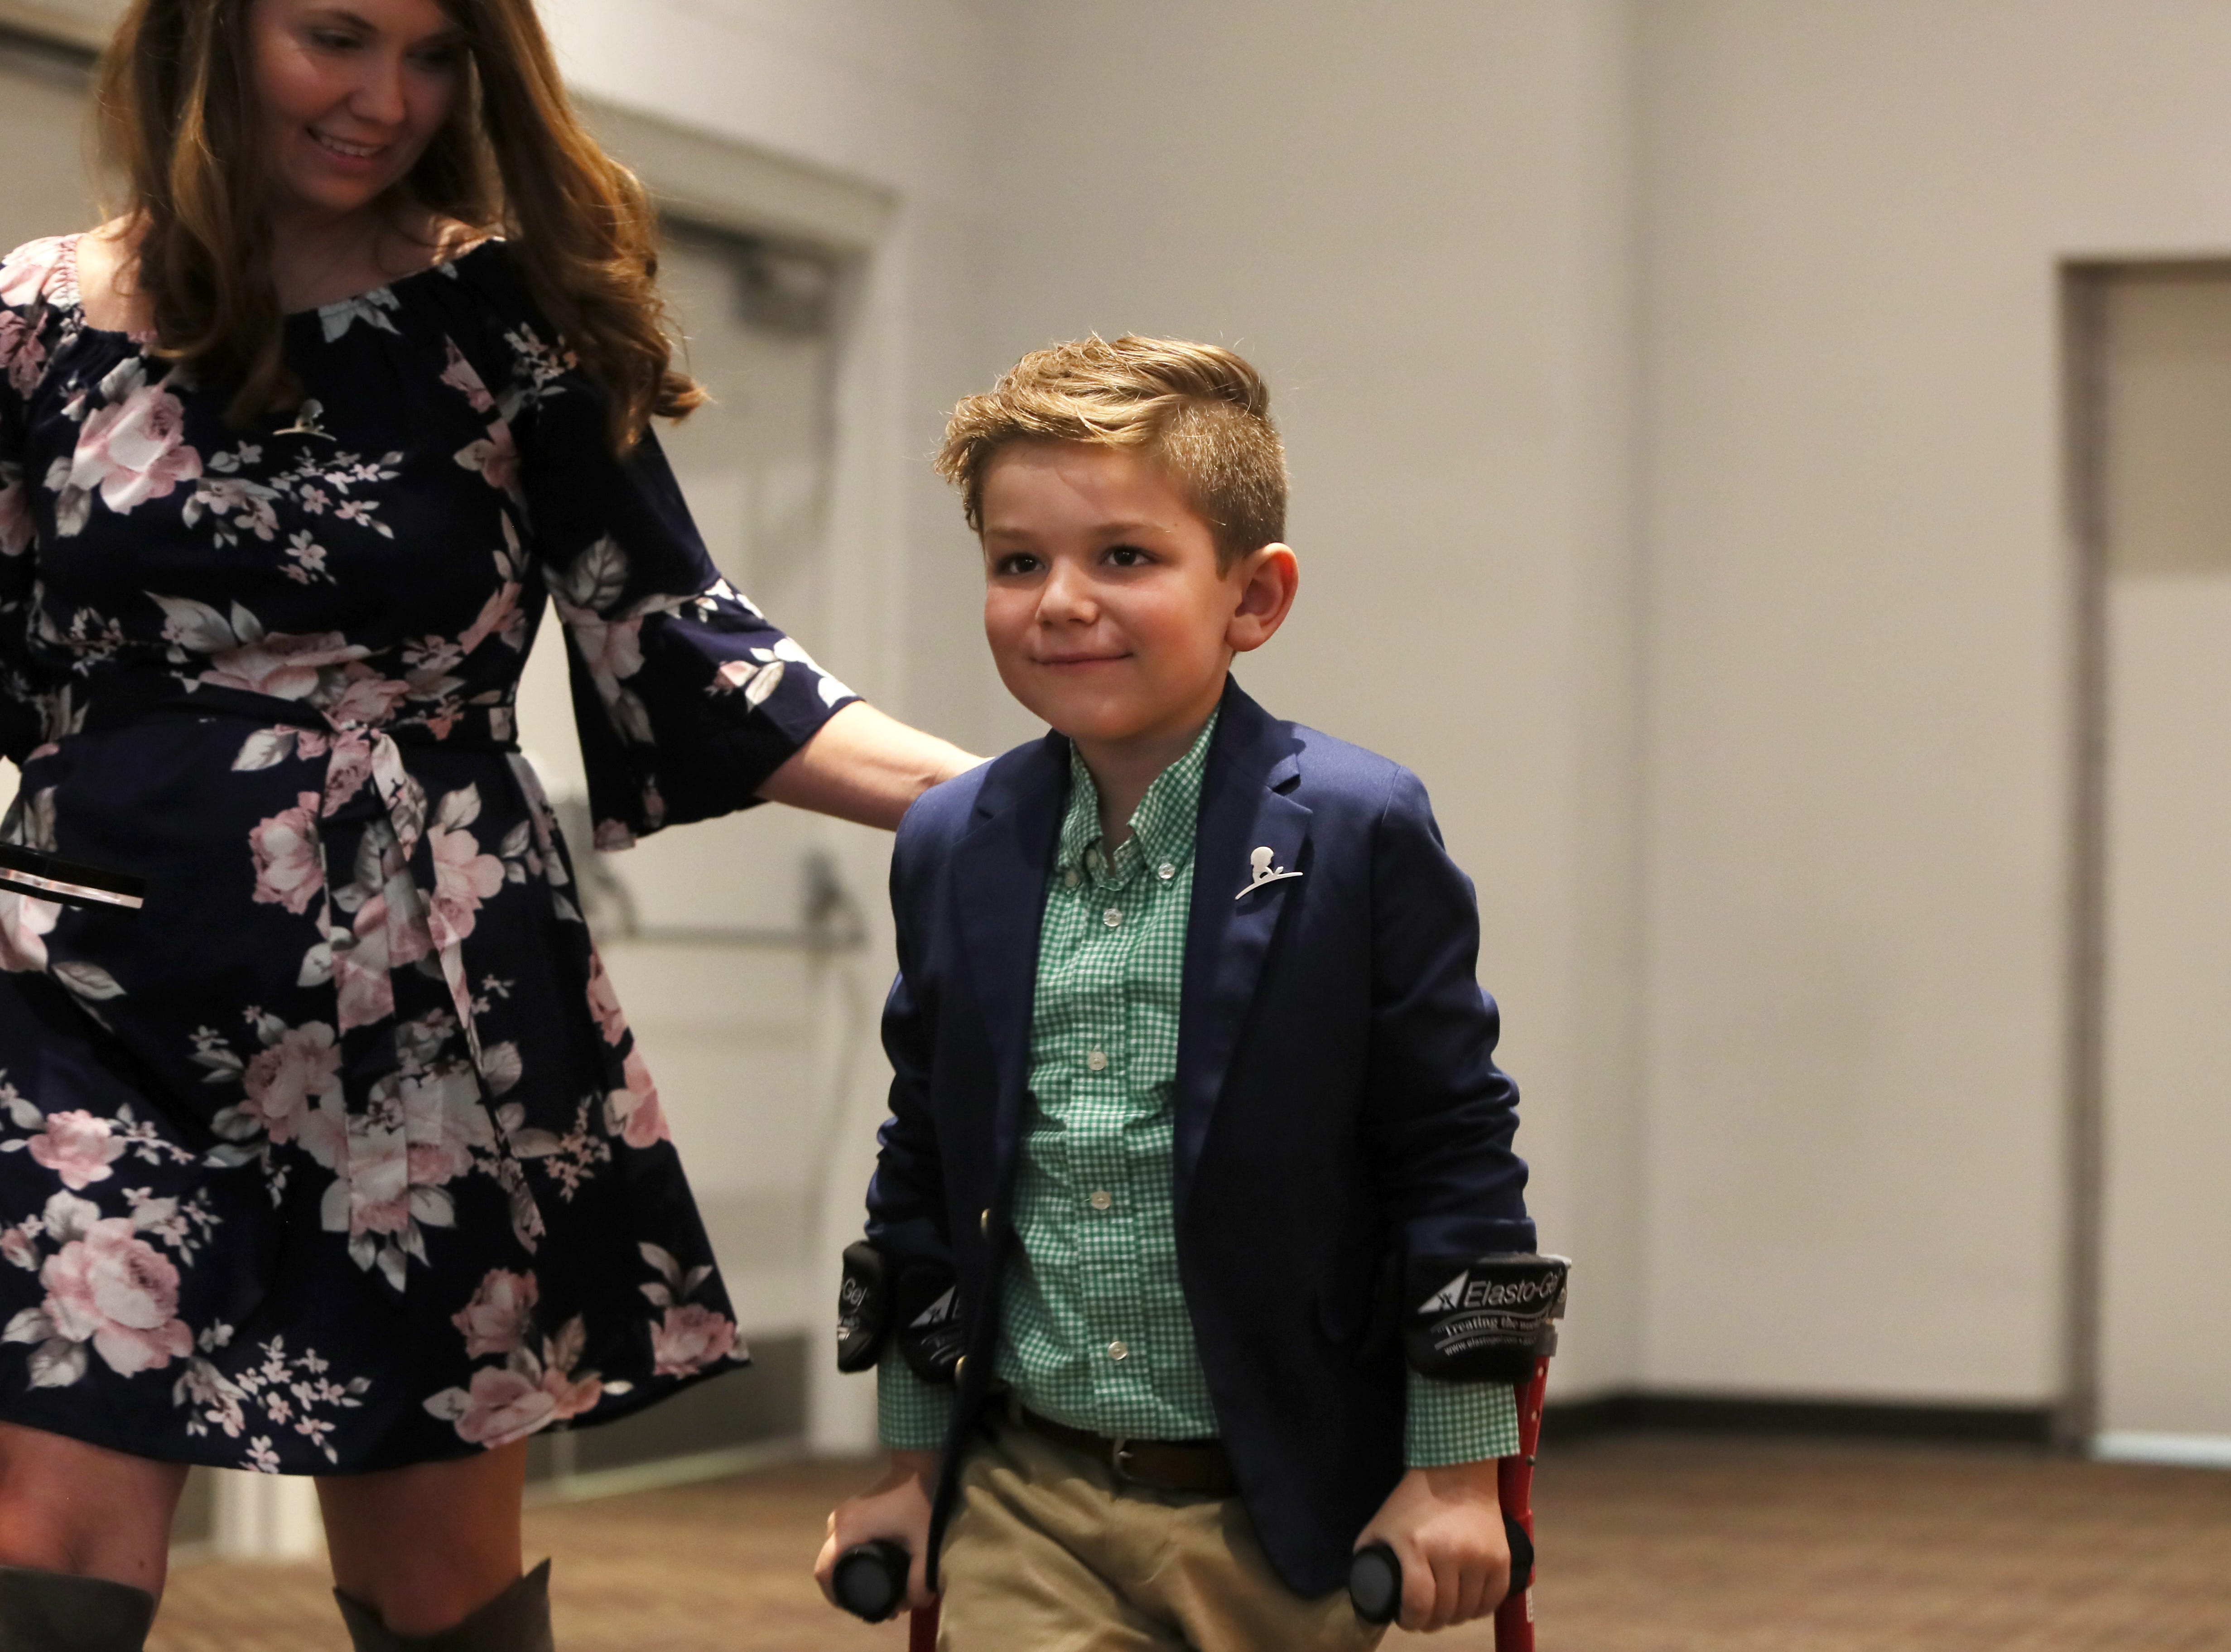 Kael Hill, 6, with his mom Ashley greet St. Jude Hero Among Us award recipient Kent Stoneking at the Cook Convention Center on Thursday, Nov. 29, 2018.